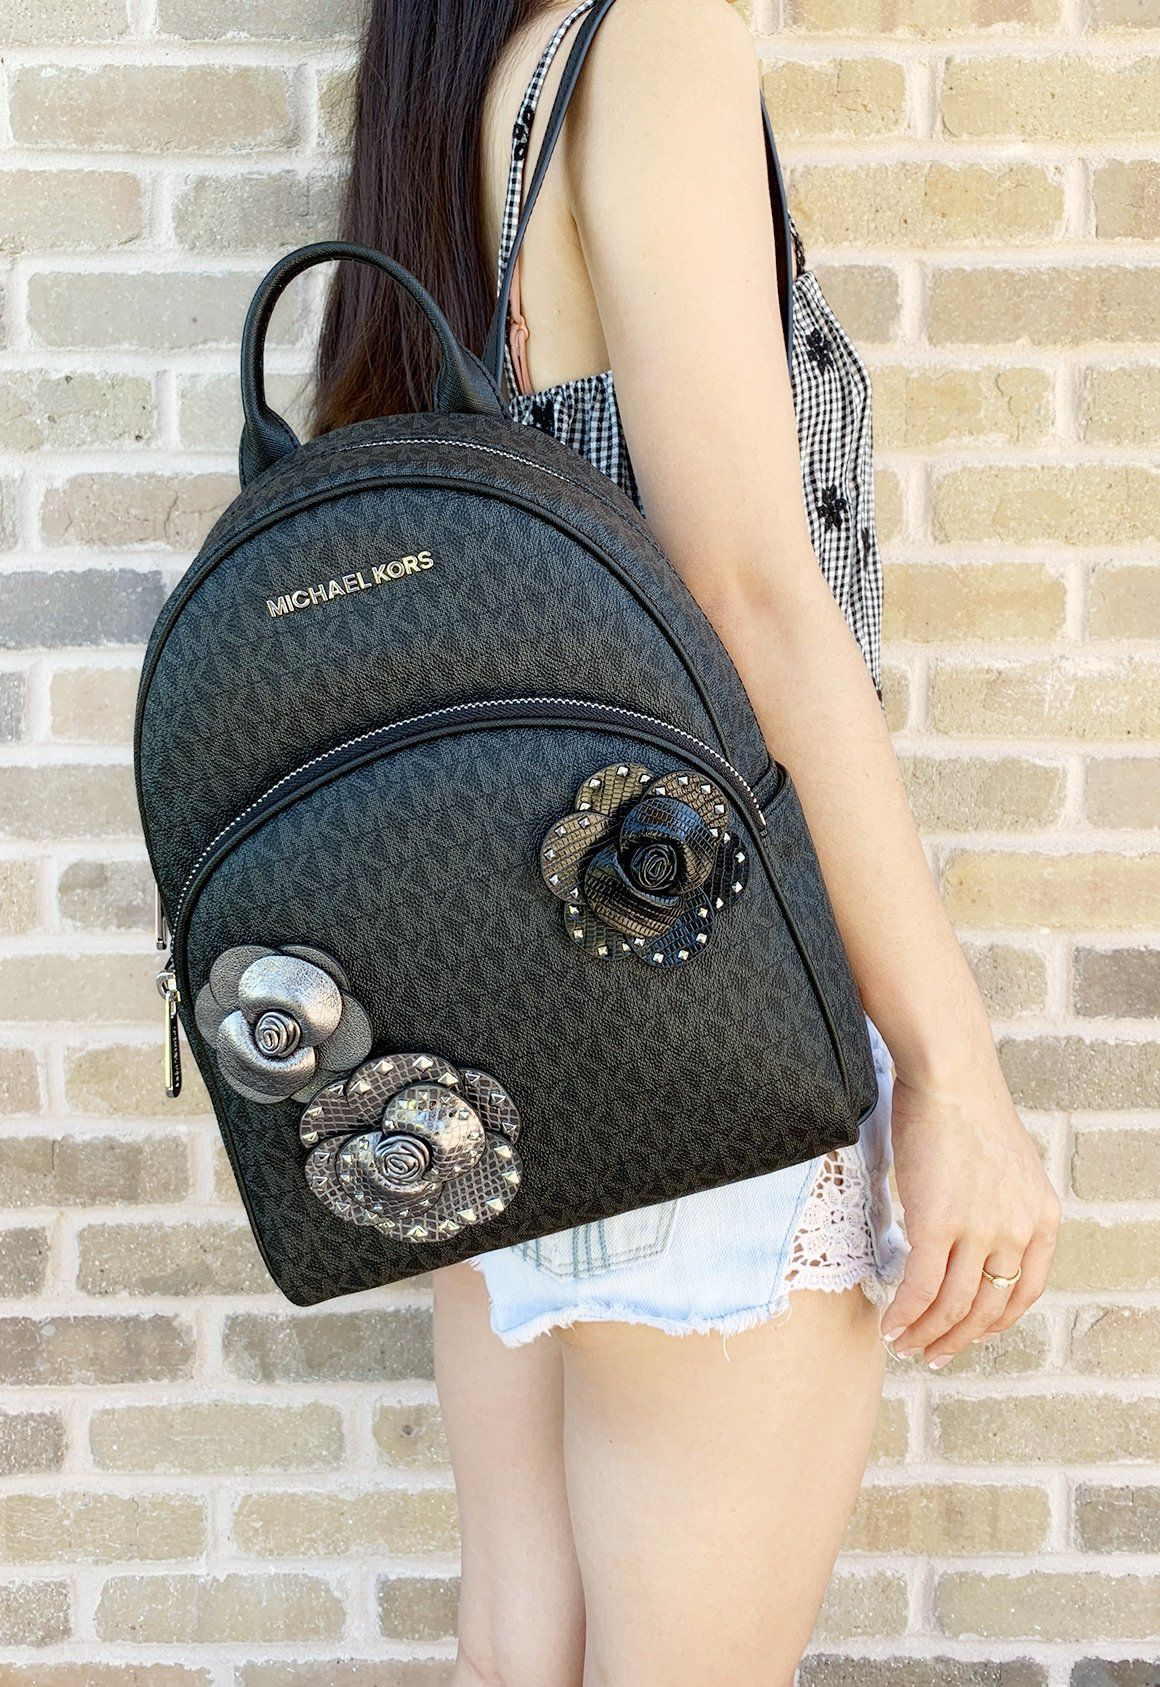 69defbd8b31a Michael Kors Abbey Medium Backpack Black MK Signature Flower School Bag   amazonfashion  poshfashion  ebaybusiness  mercariapp  eBay  posh   poshpackages  top ...